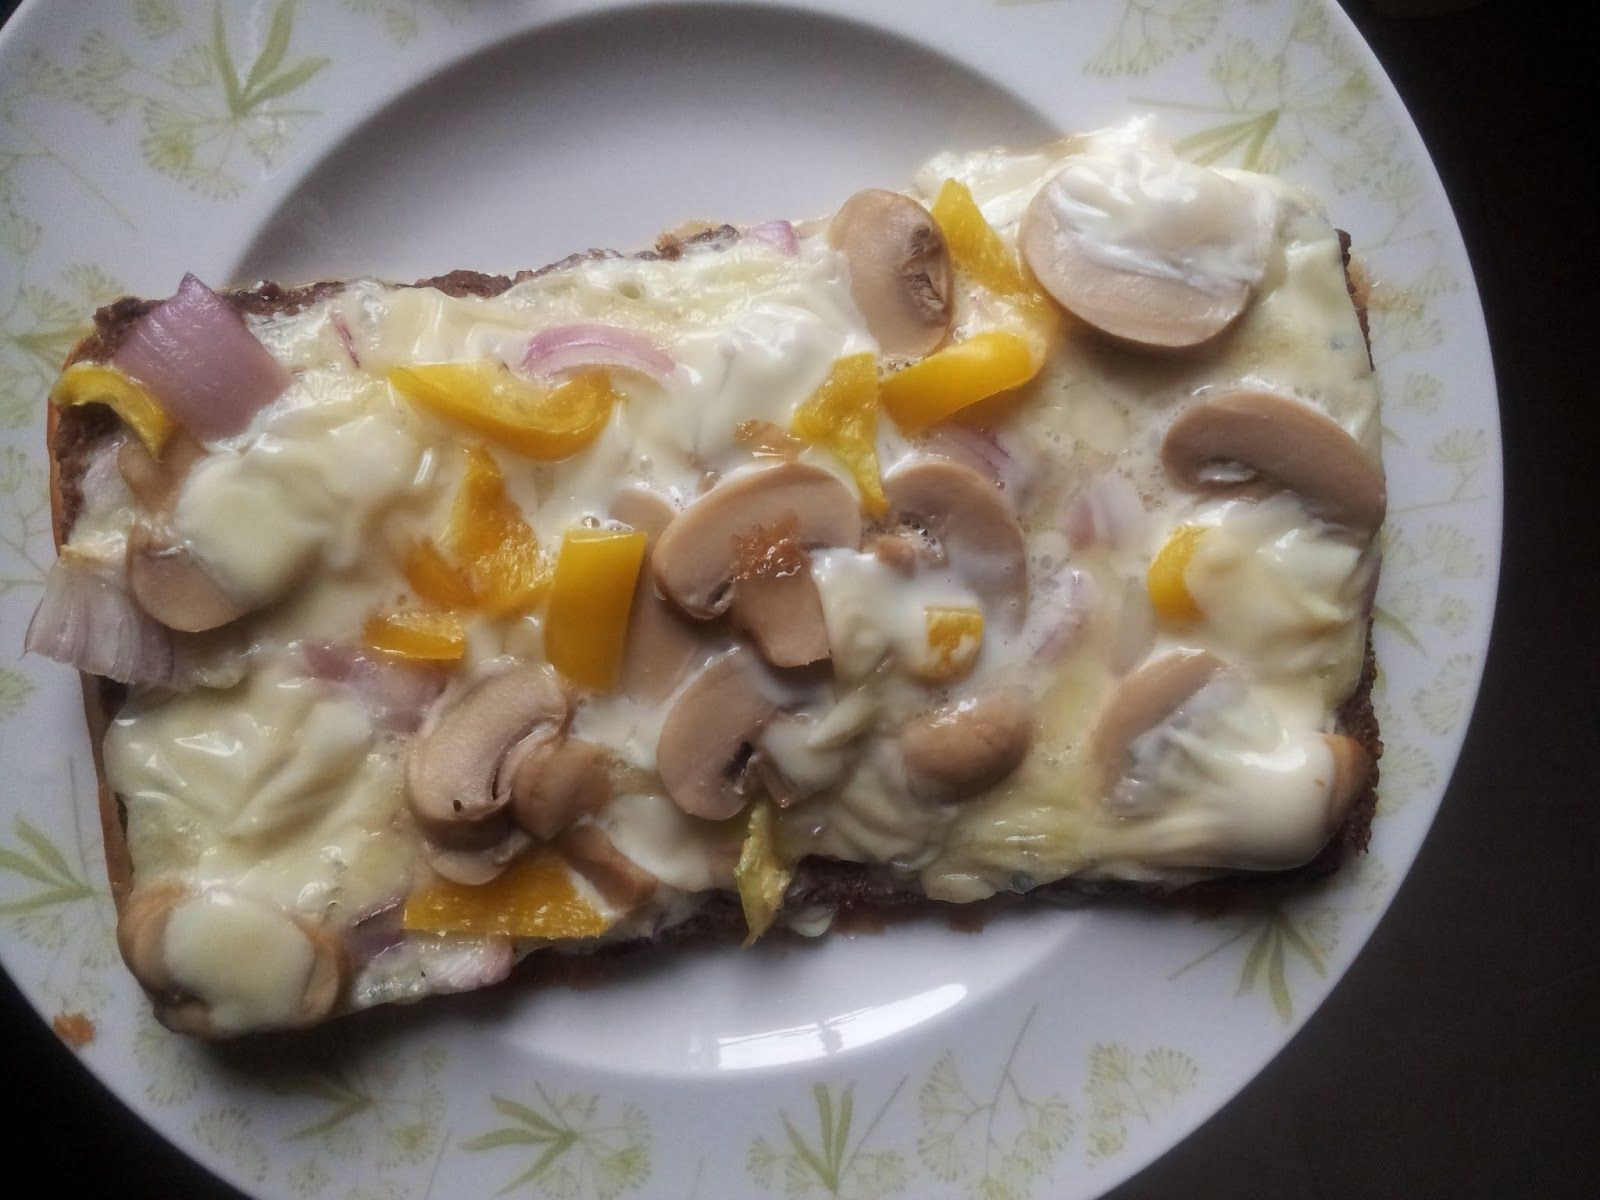 Delicious faux pizza with fitness bread crust. Yum! www.frostedbakeshopng.blogspot.com